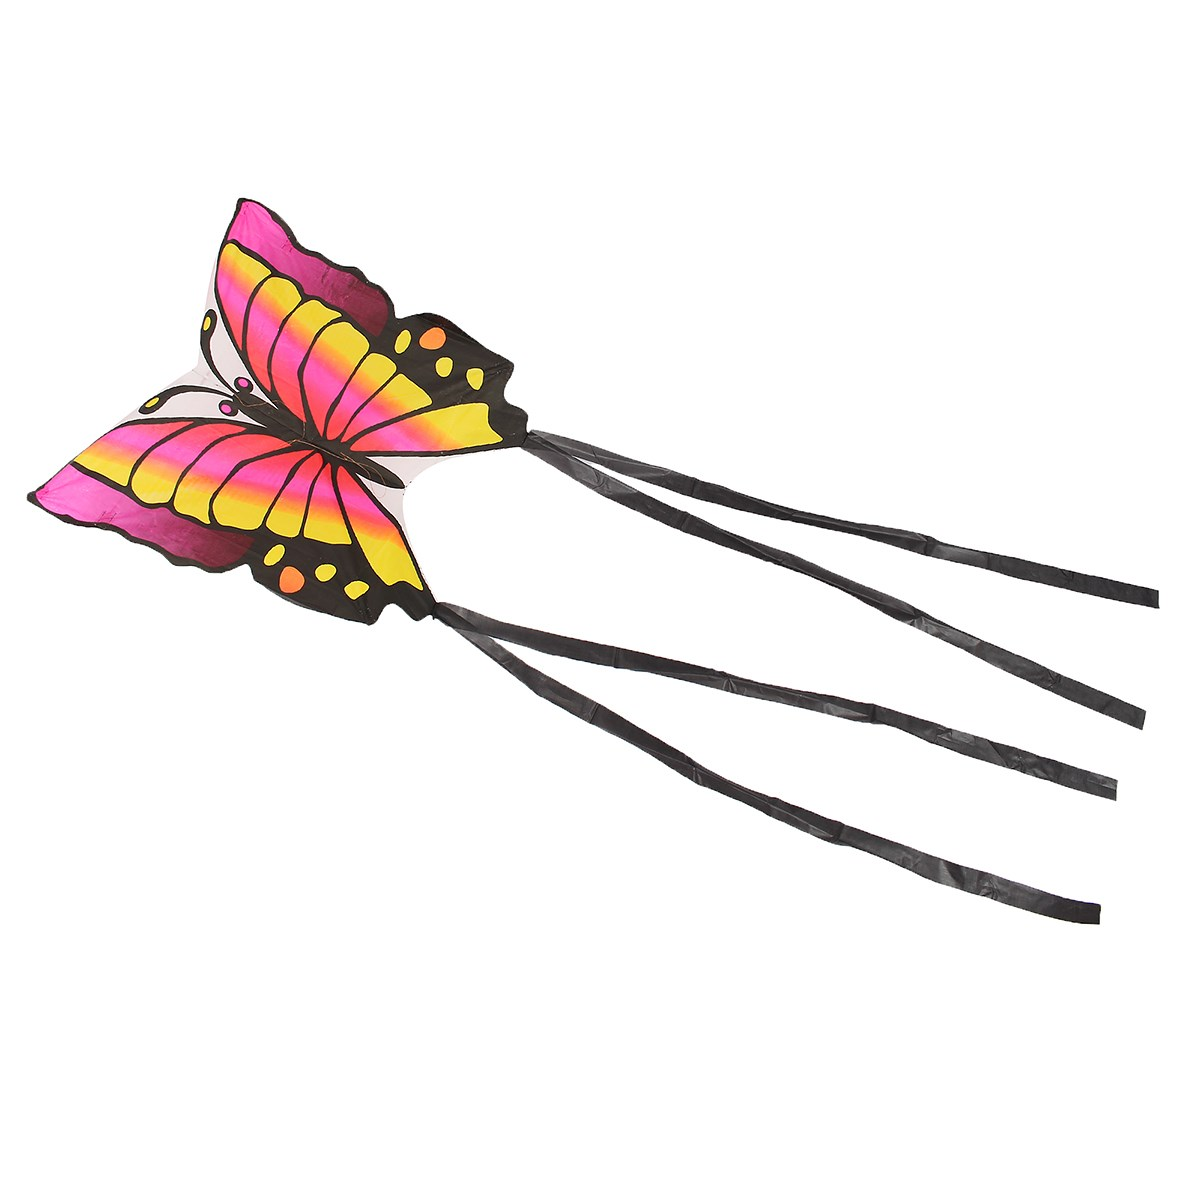 Butterfly-Kite-Easy-to-Fly-Single-Line-Kite-Tail-15M-For-Kids-Outdoor-Funny-Sports-Toy-Gift-Funny-Sport-Outdoor-Playing-Toys-2